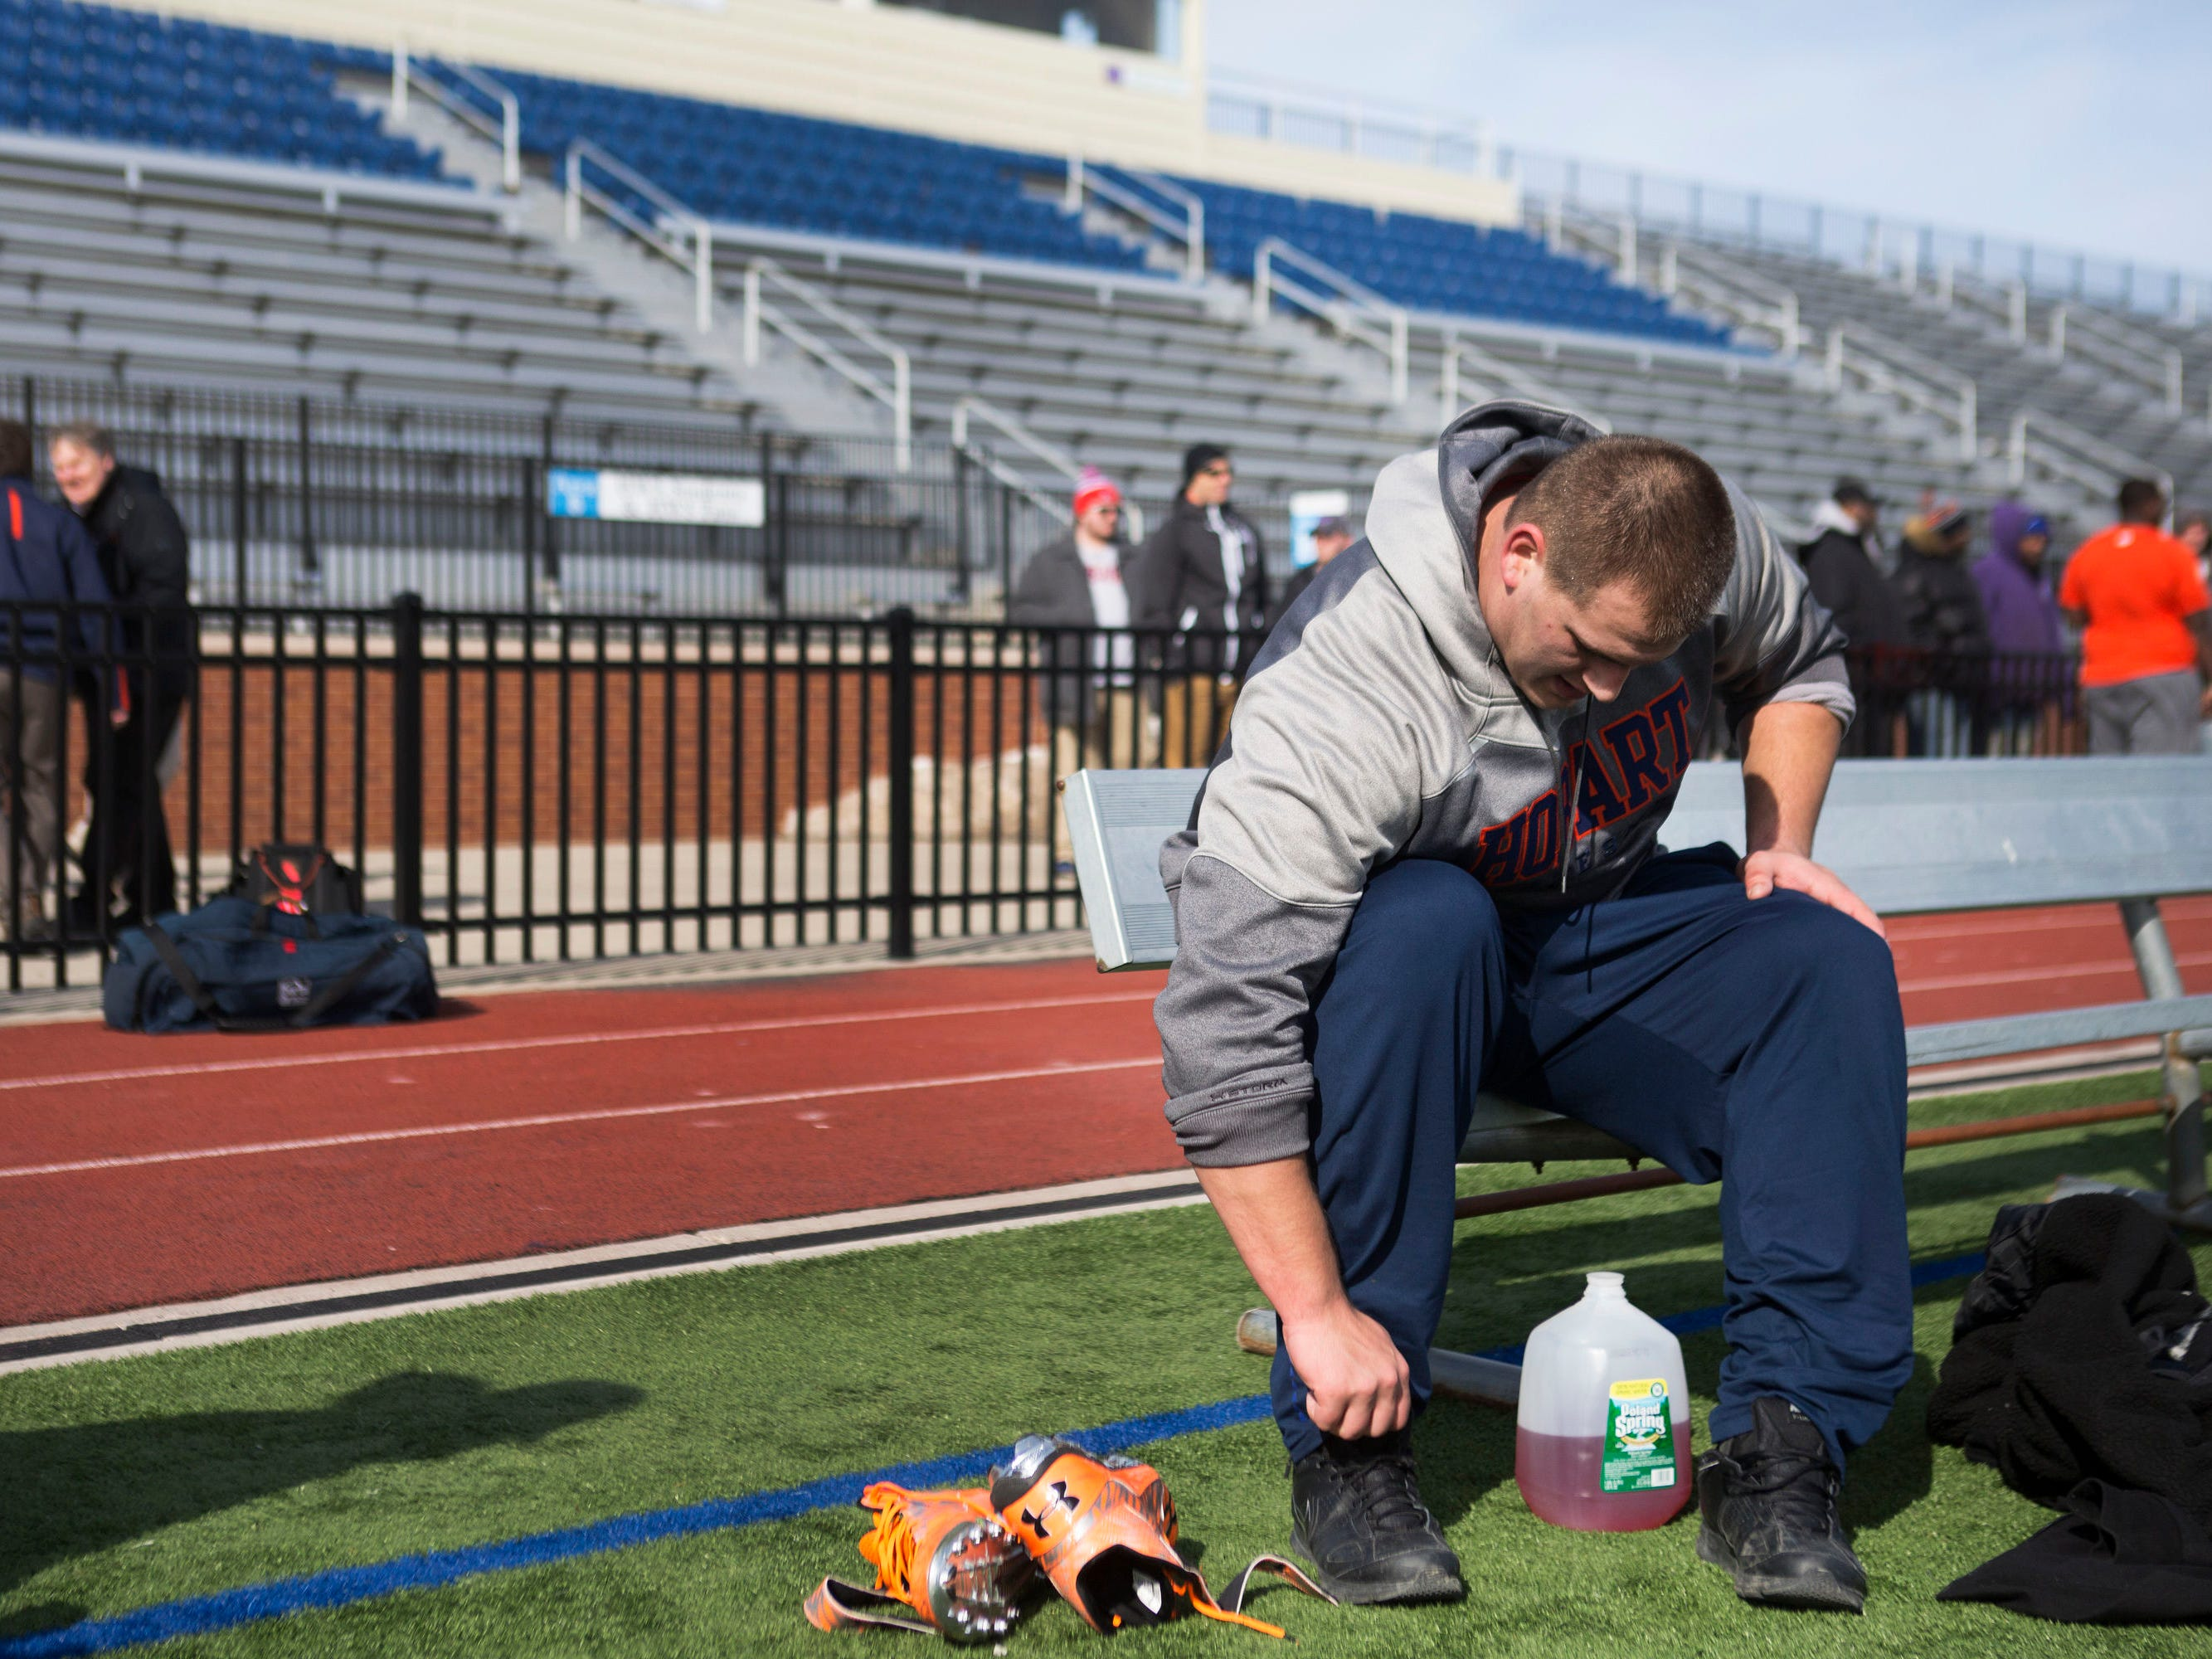 Senior offensive lineman Ali Marpet puts his shoes on after finishing his NFL Pro Day workout at Hobart College.